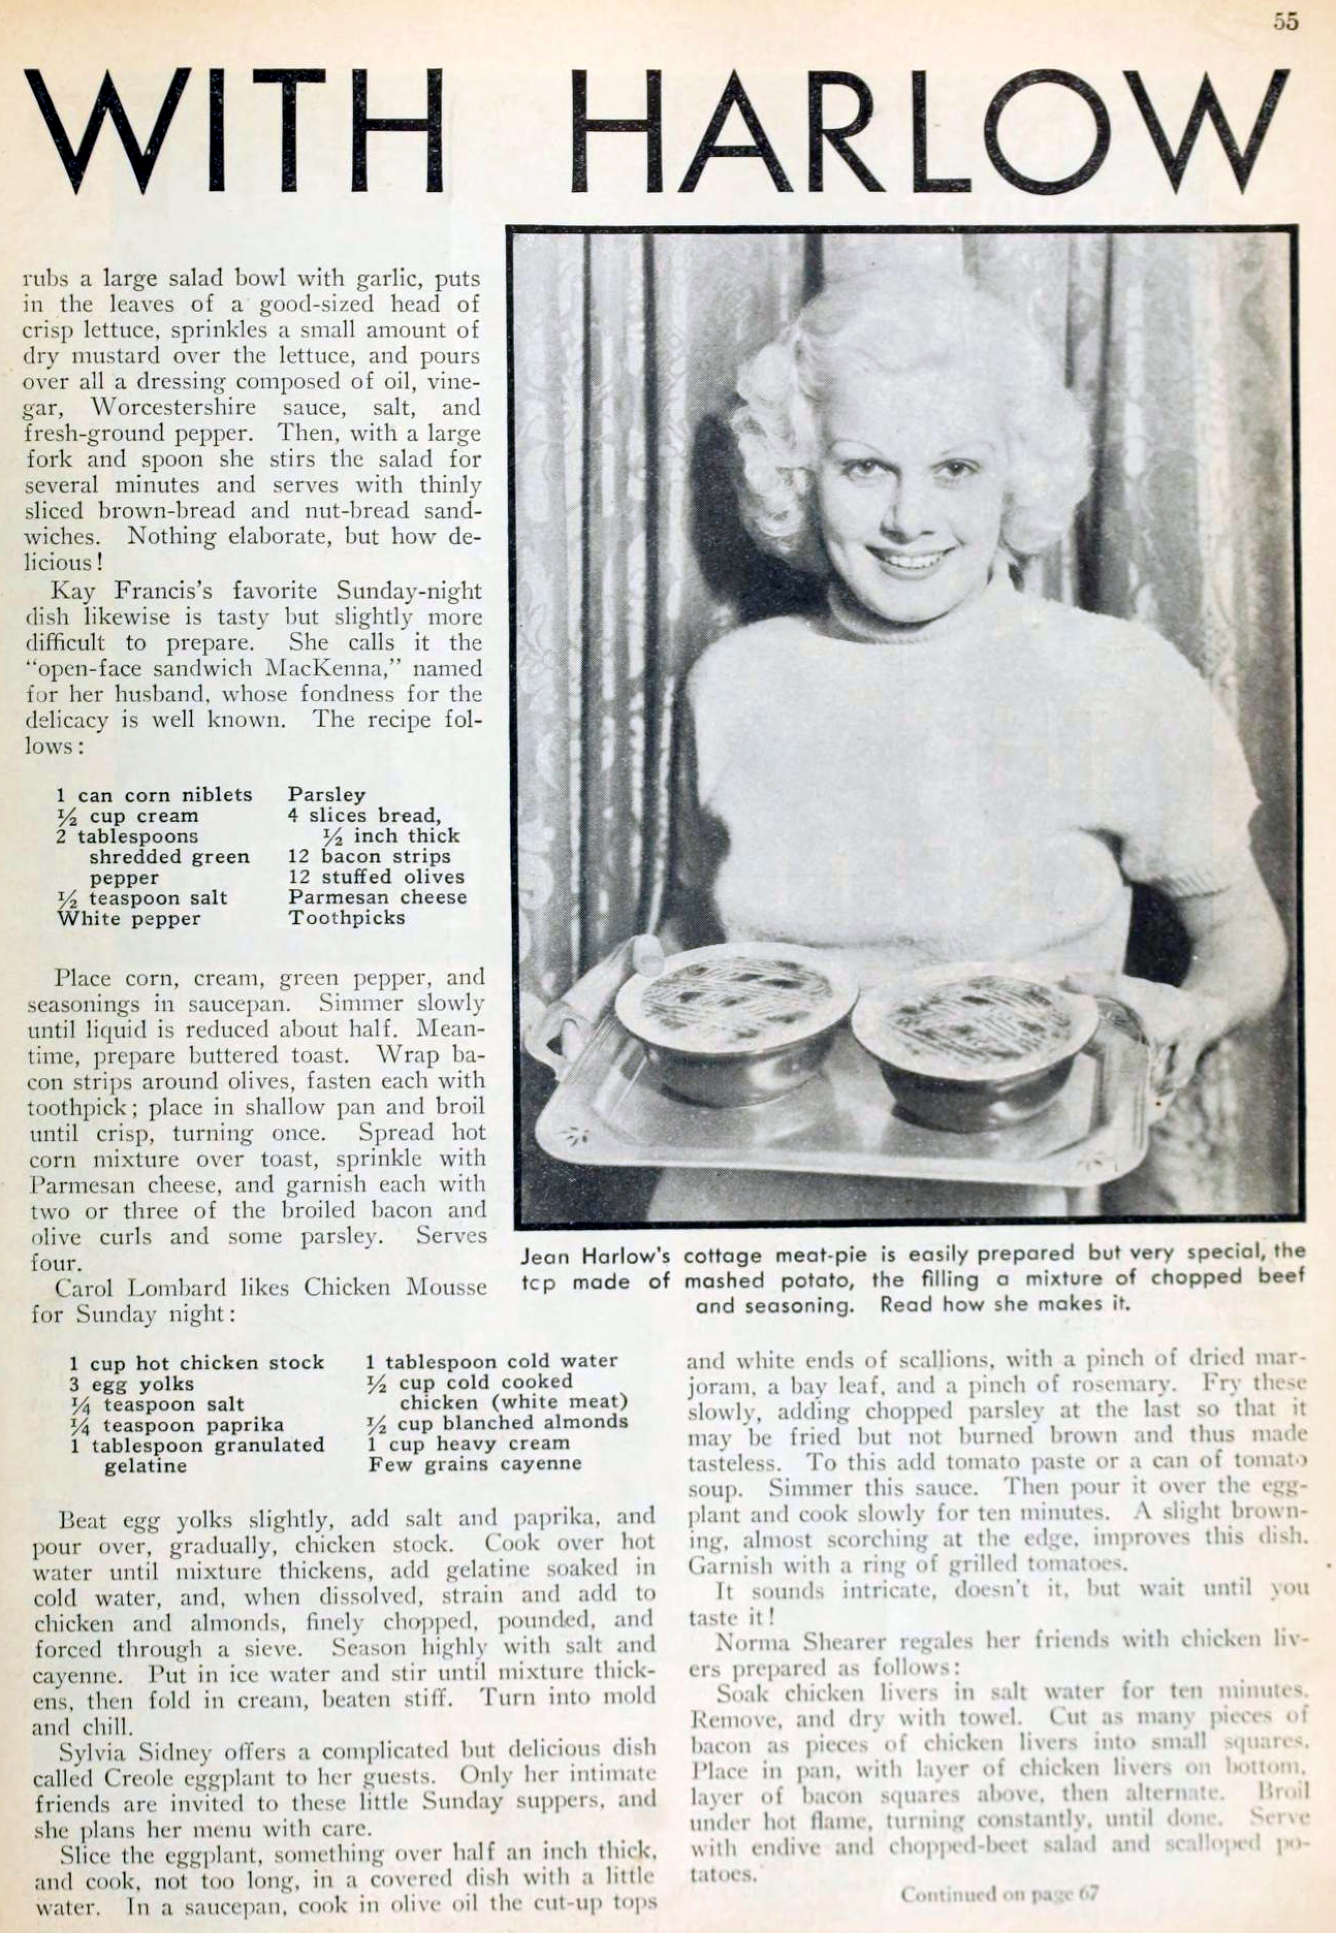 carole lombard picture play july 1933 sunday supper with harlow 01a